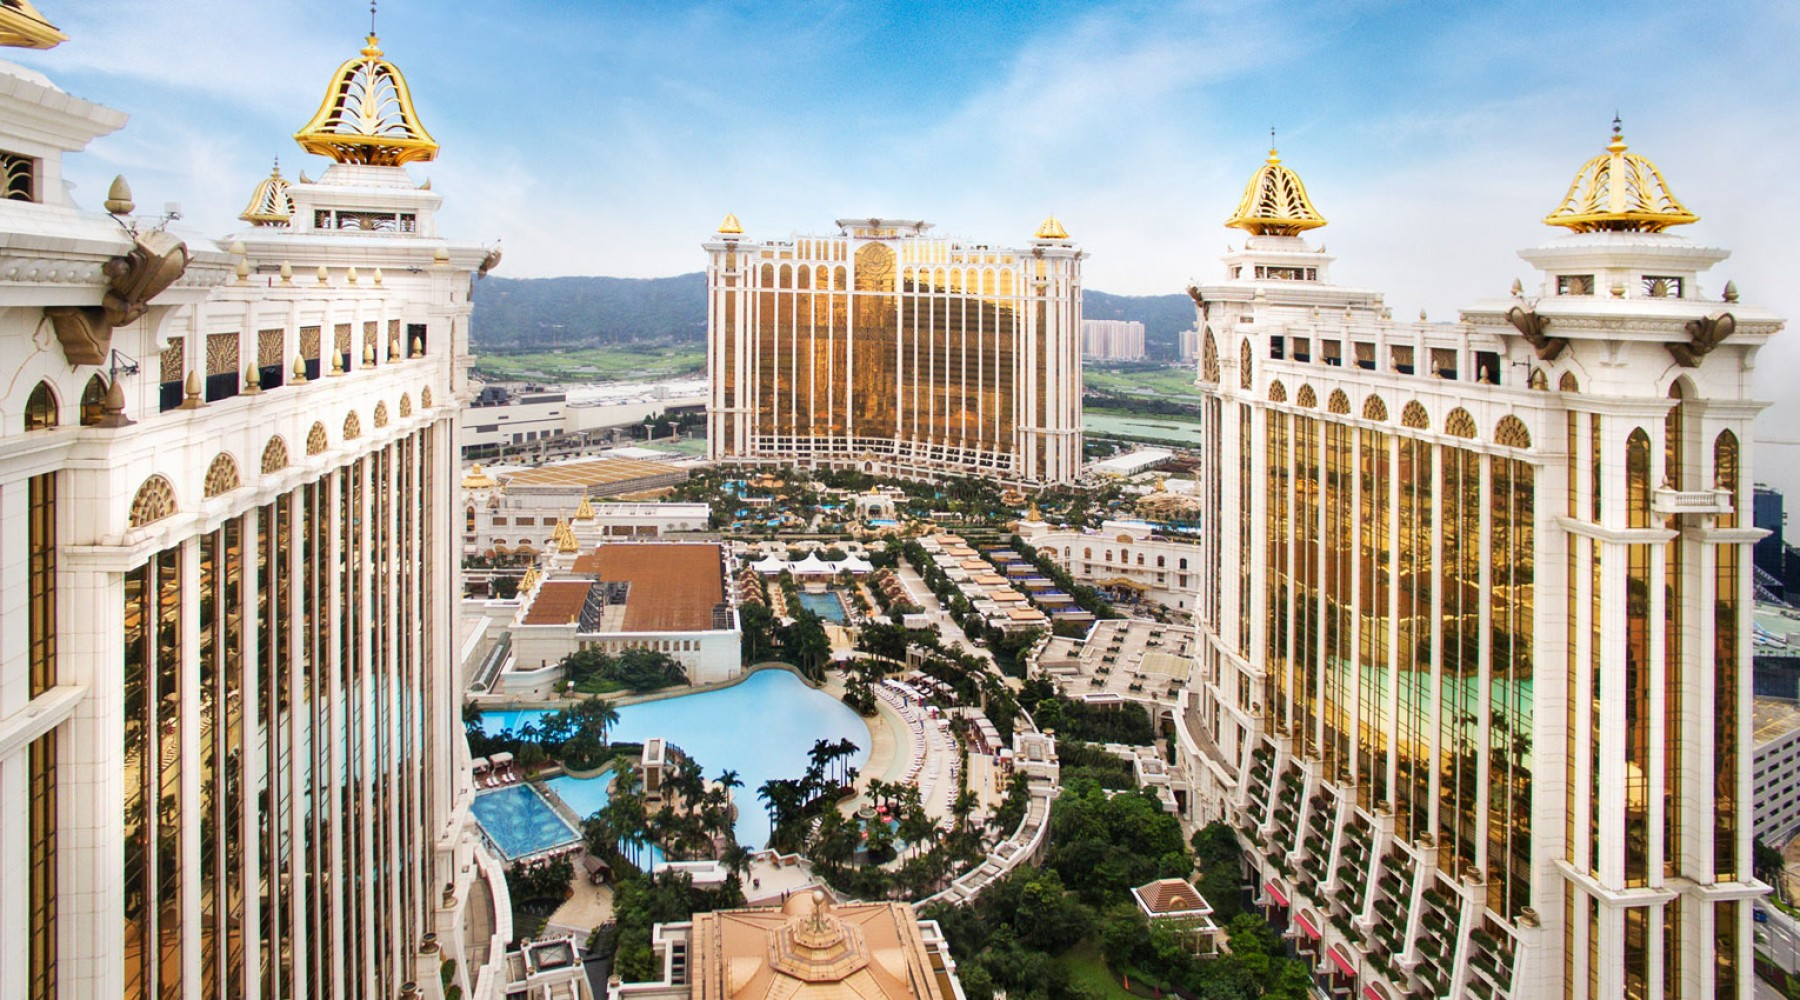 Wynn sells up Wynn Resorts shares for $2bn